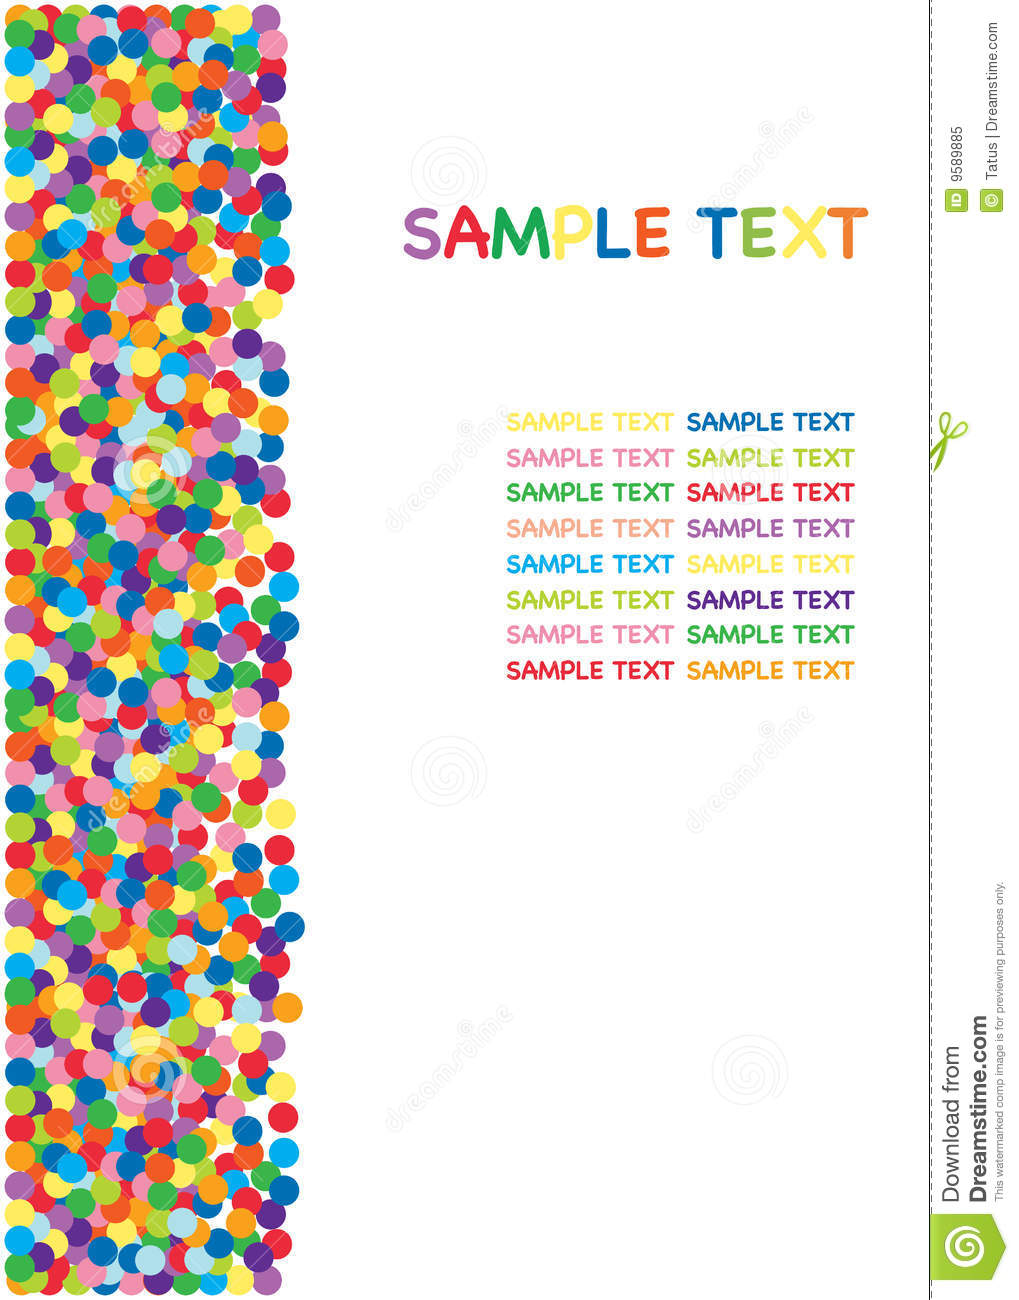 Colorful Confetti Border Royalty Free Stock Photo - Image: 9589885